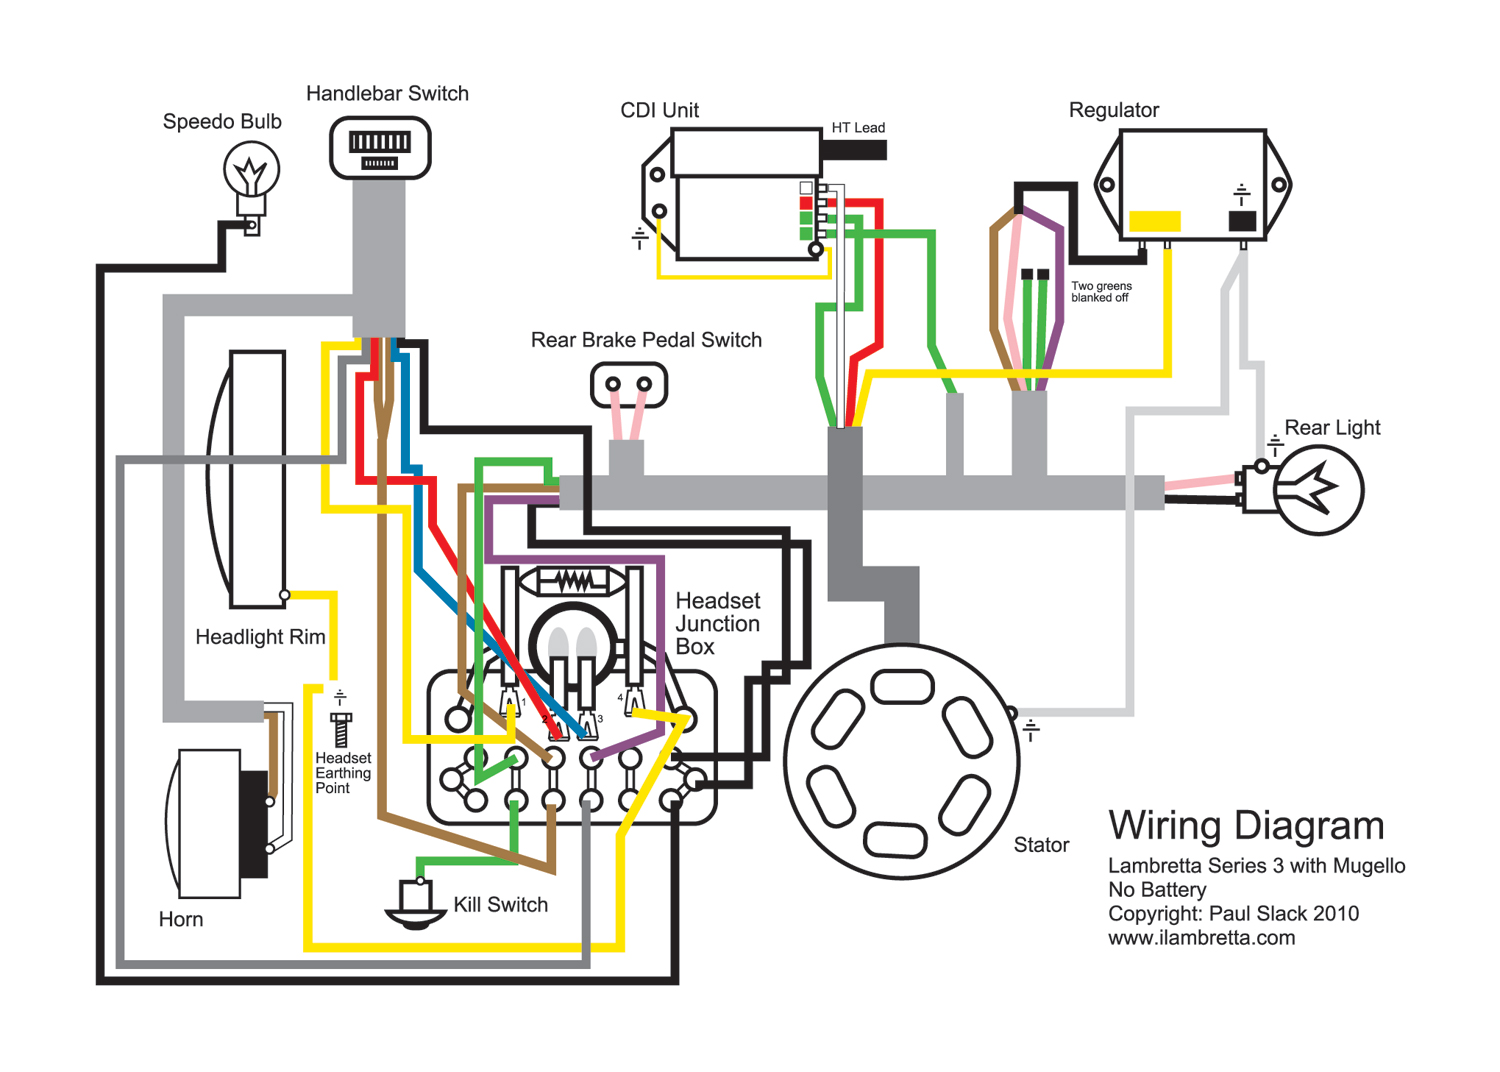 scooter ignition switch wiring diagram 67 vw beetle lambretta restoration for mugello 12 volt